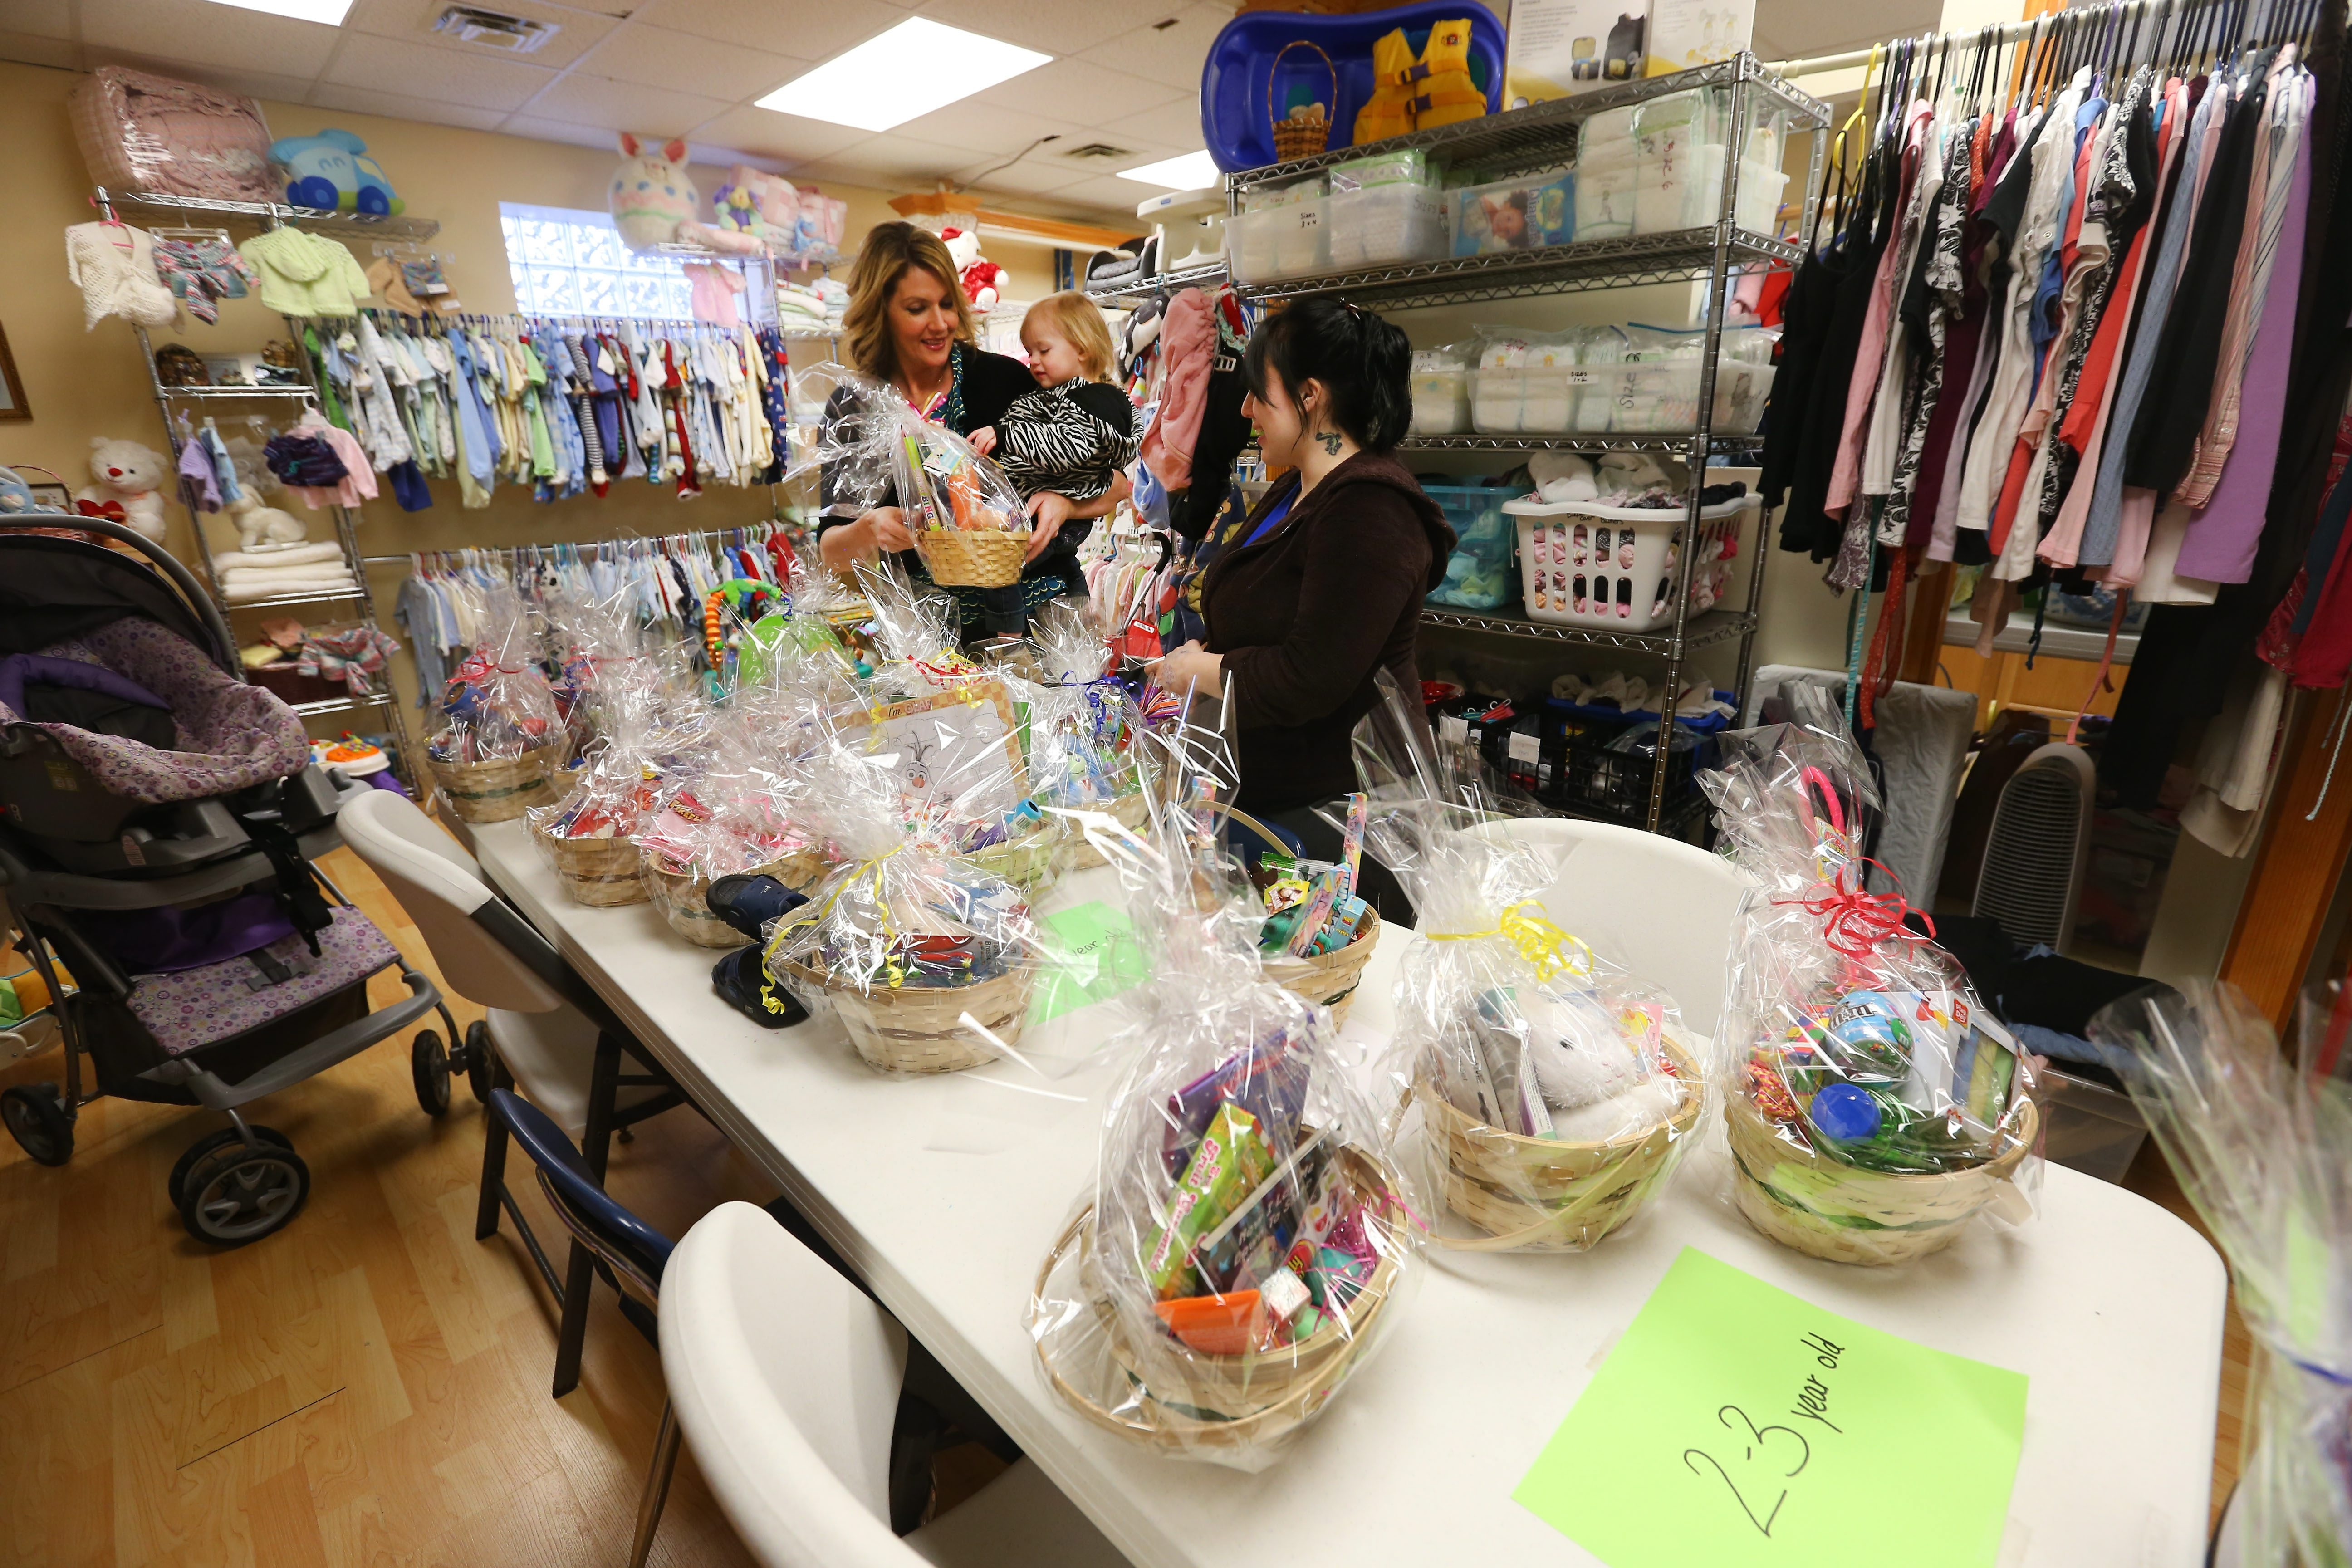 Barbara J. Bidak, executive director of nonprofit Summit Life Outreach Center, 1622 Pine Ave., holds Kylie Clark, 2, while the girl's mother, Destiny Tamborello, one of the center's more than six dozen clients, looks at items in the Parenting Shop.